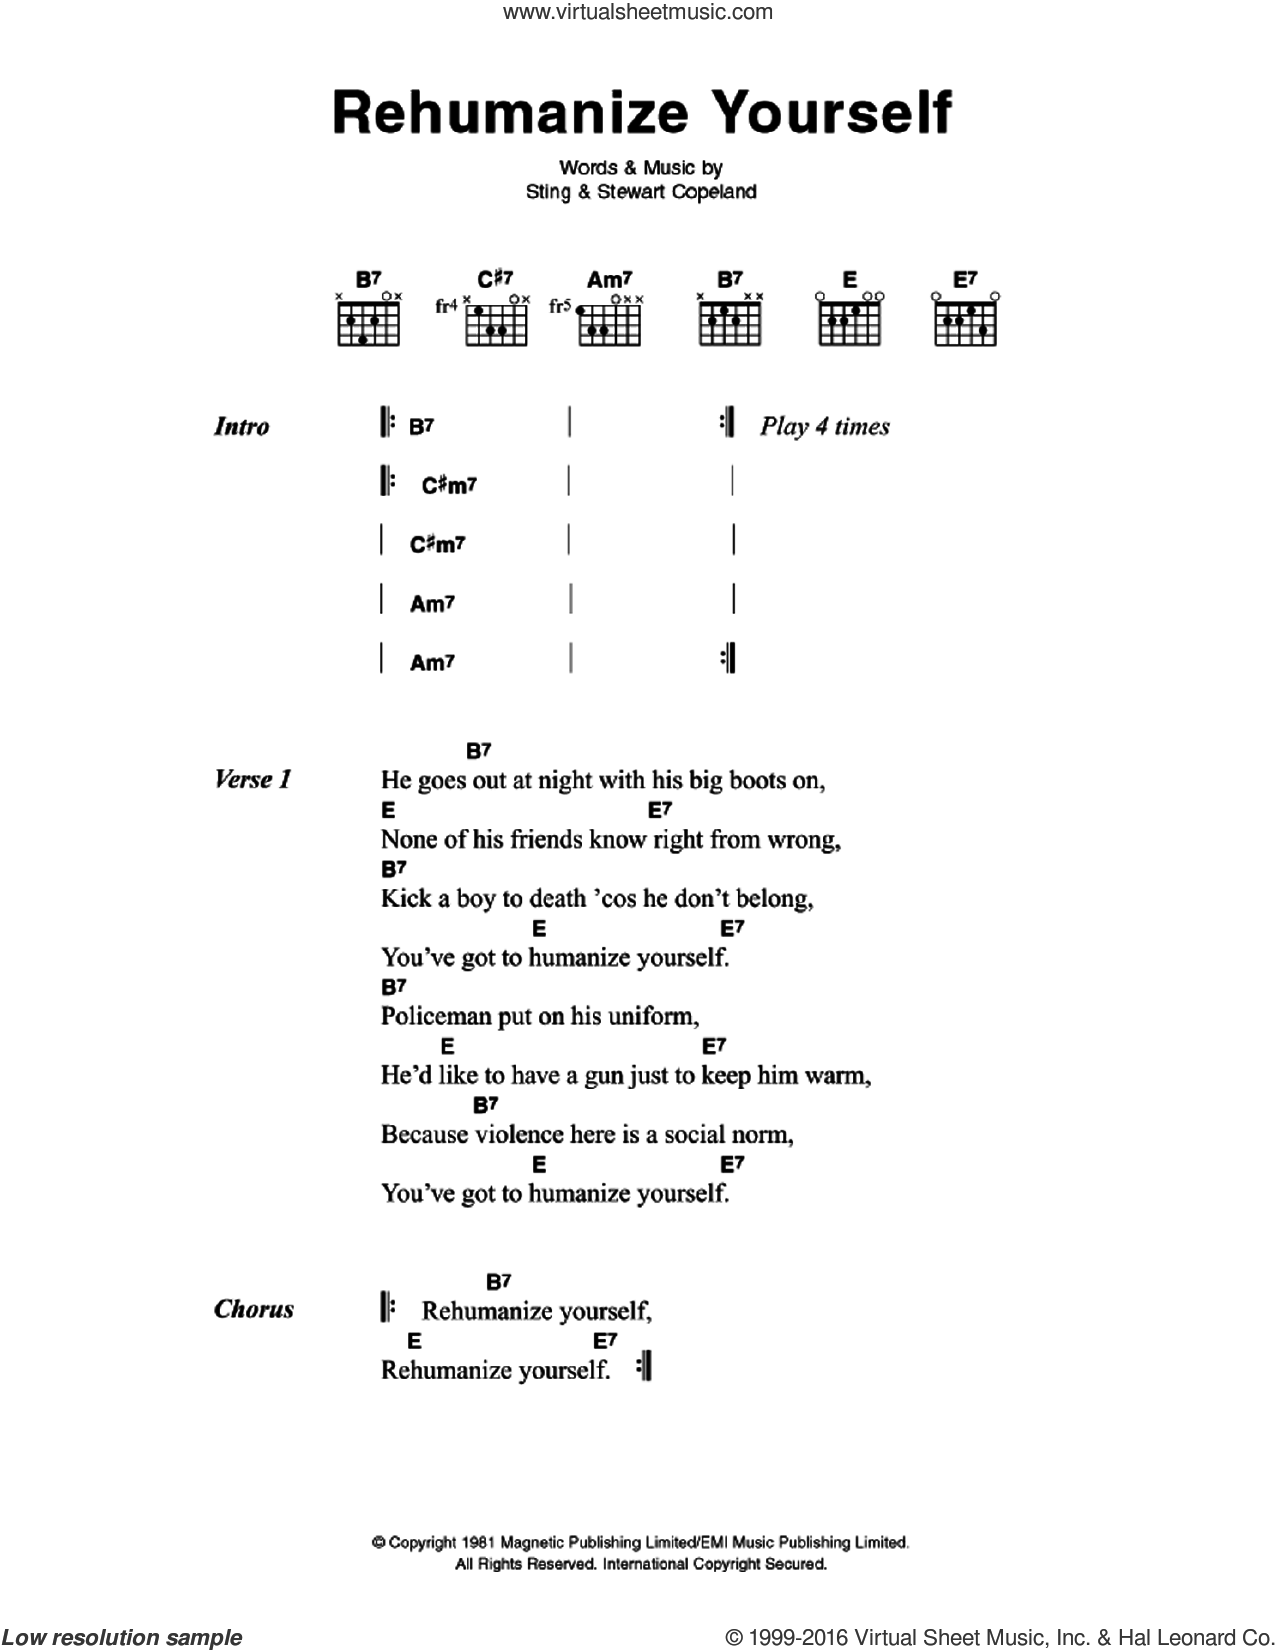 Rehumanize Yourself sheet music for guitar (chords) by Sting, The Police and Stewart Copeland. Score Image Preview.